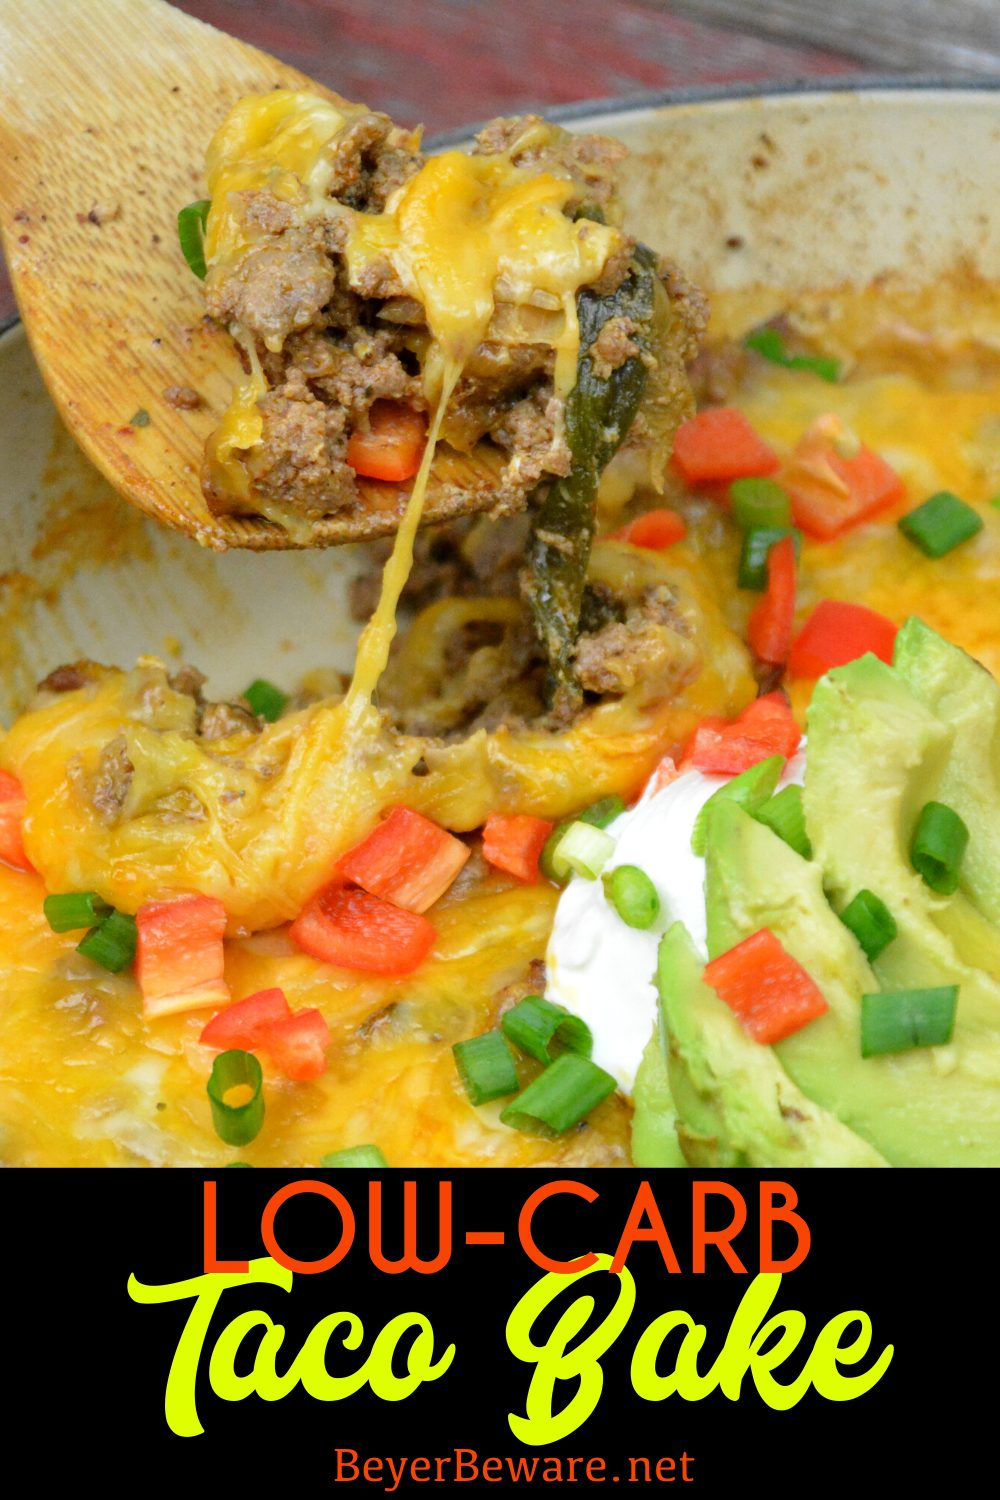 Low-Carb Taco Bake combines the favorite flavors of Mexican food in one pan for a meal that is baked to a flavorful and cheesy keto taco ground beef casserole. #keto #lowcarb #TacoBake #easyrecipe